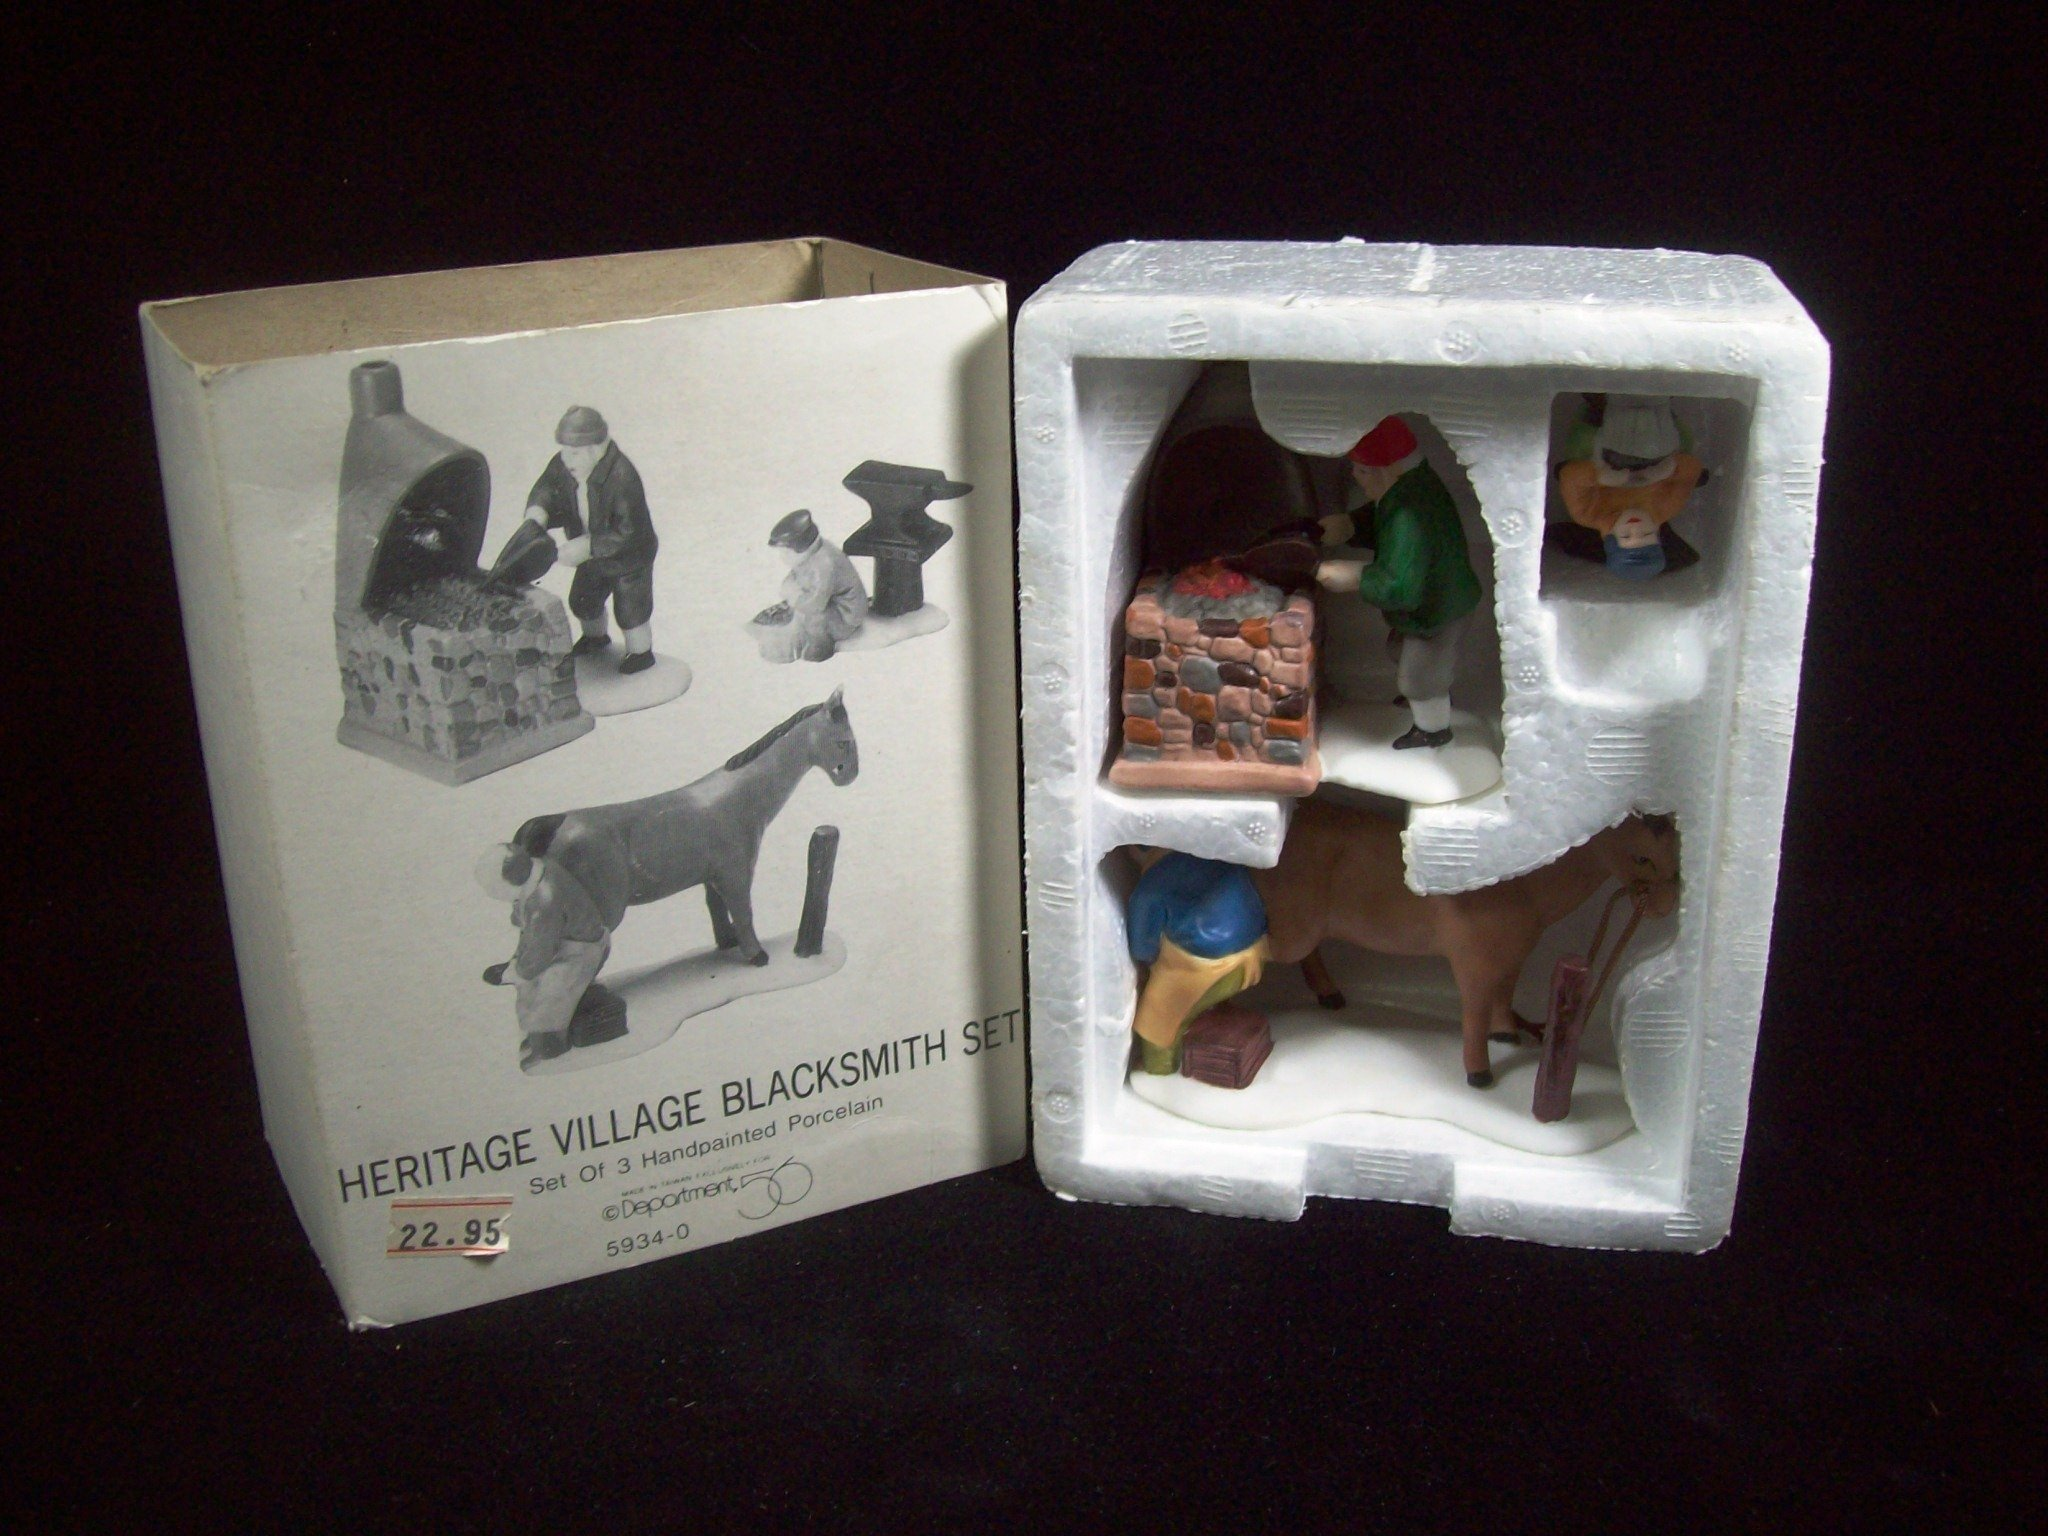 Department 56 Heritage Village Collection ; Dickens Village Blacksmith Set of 3 ; 1987 Retired ; Handpainted Porcelain Accessories #5934-0